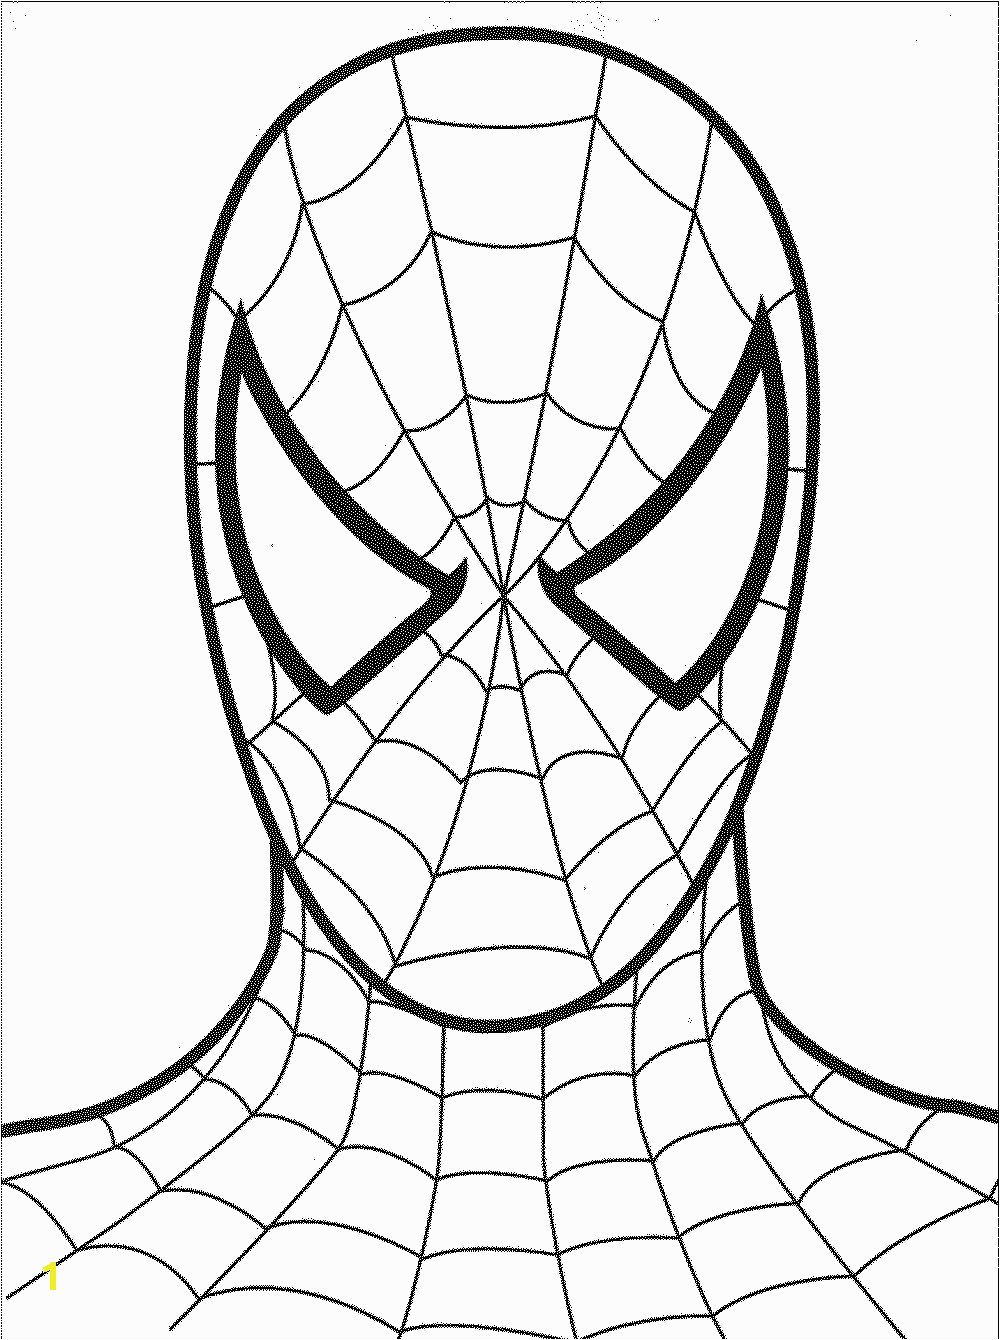 ecac92b430f99f2c18cc e7083 28 collection of spiderman coloring pages face high quality 1000 1340